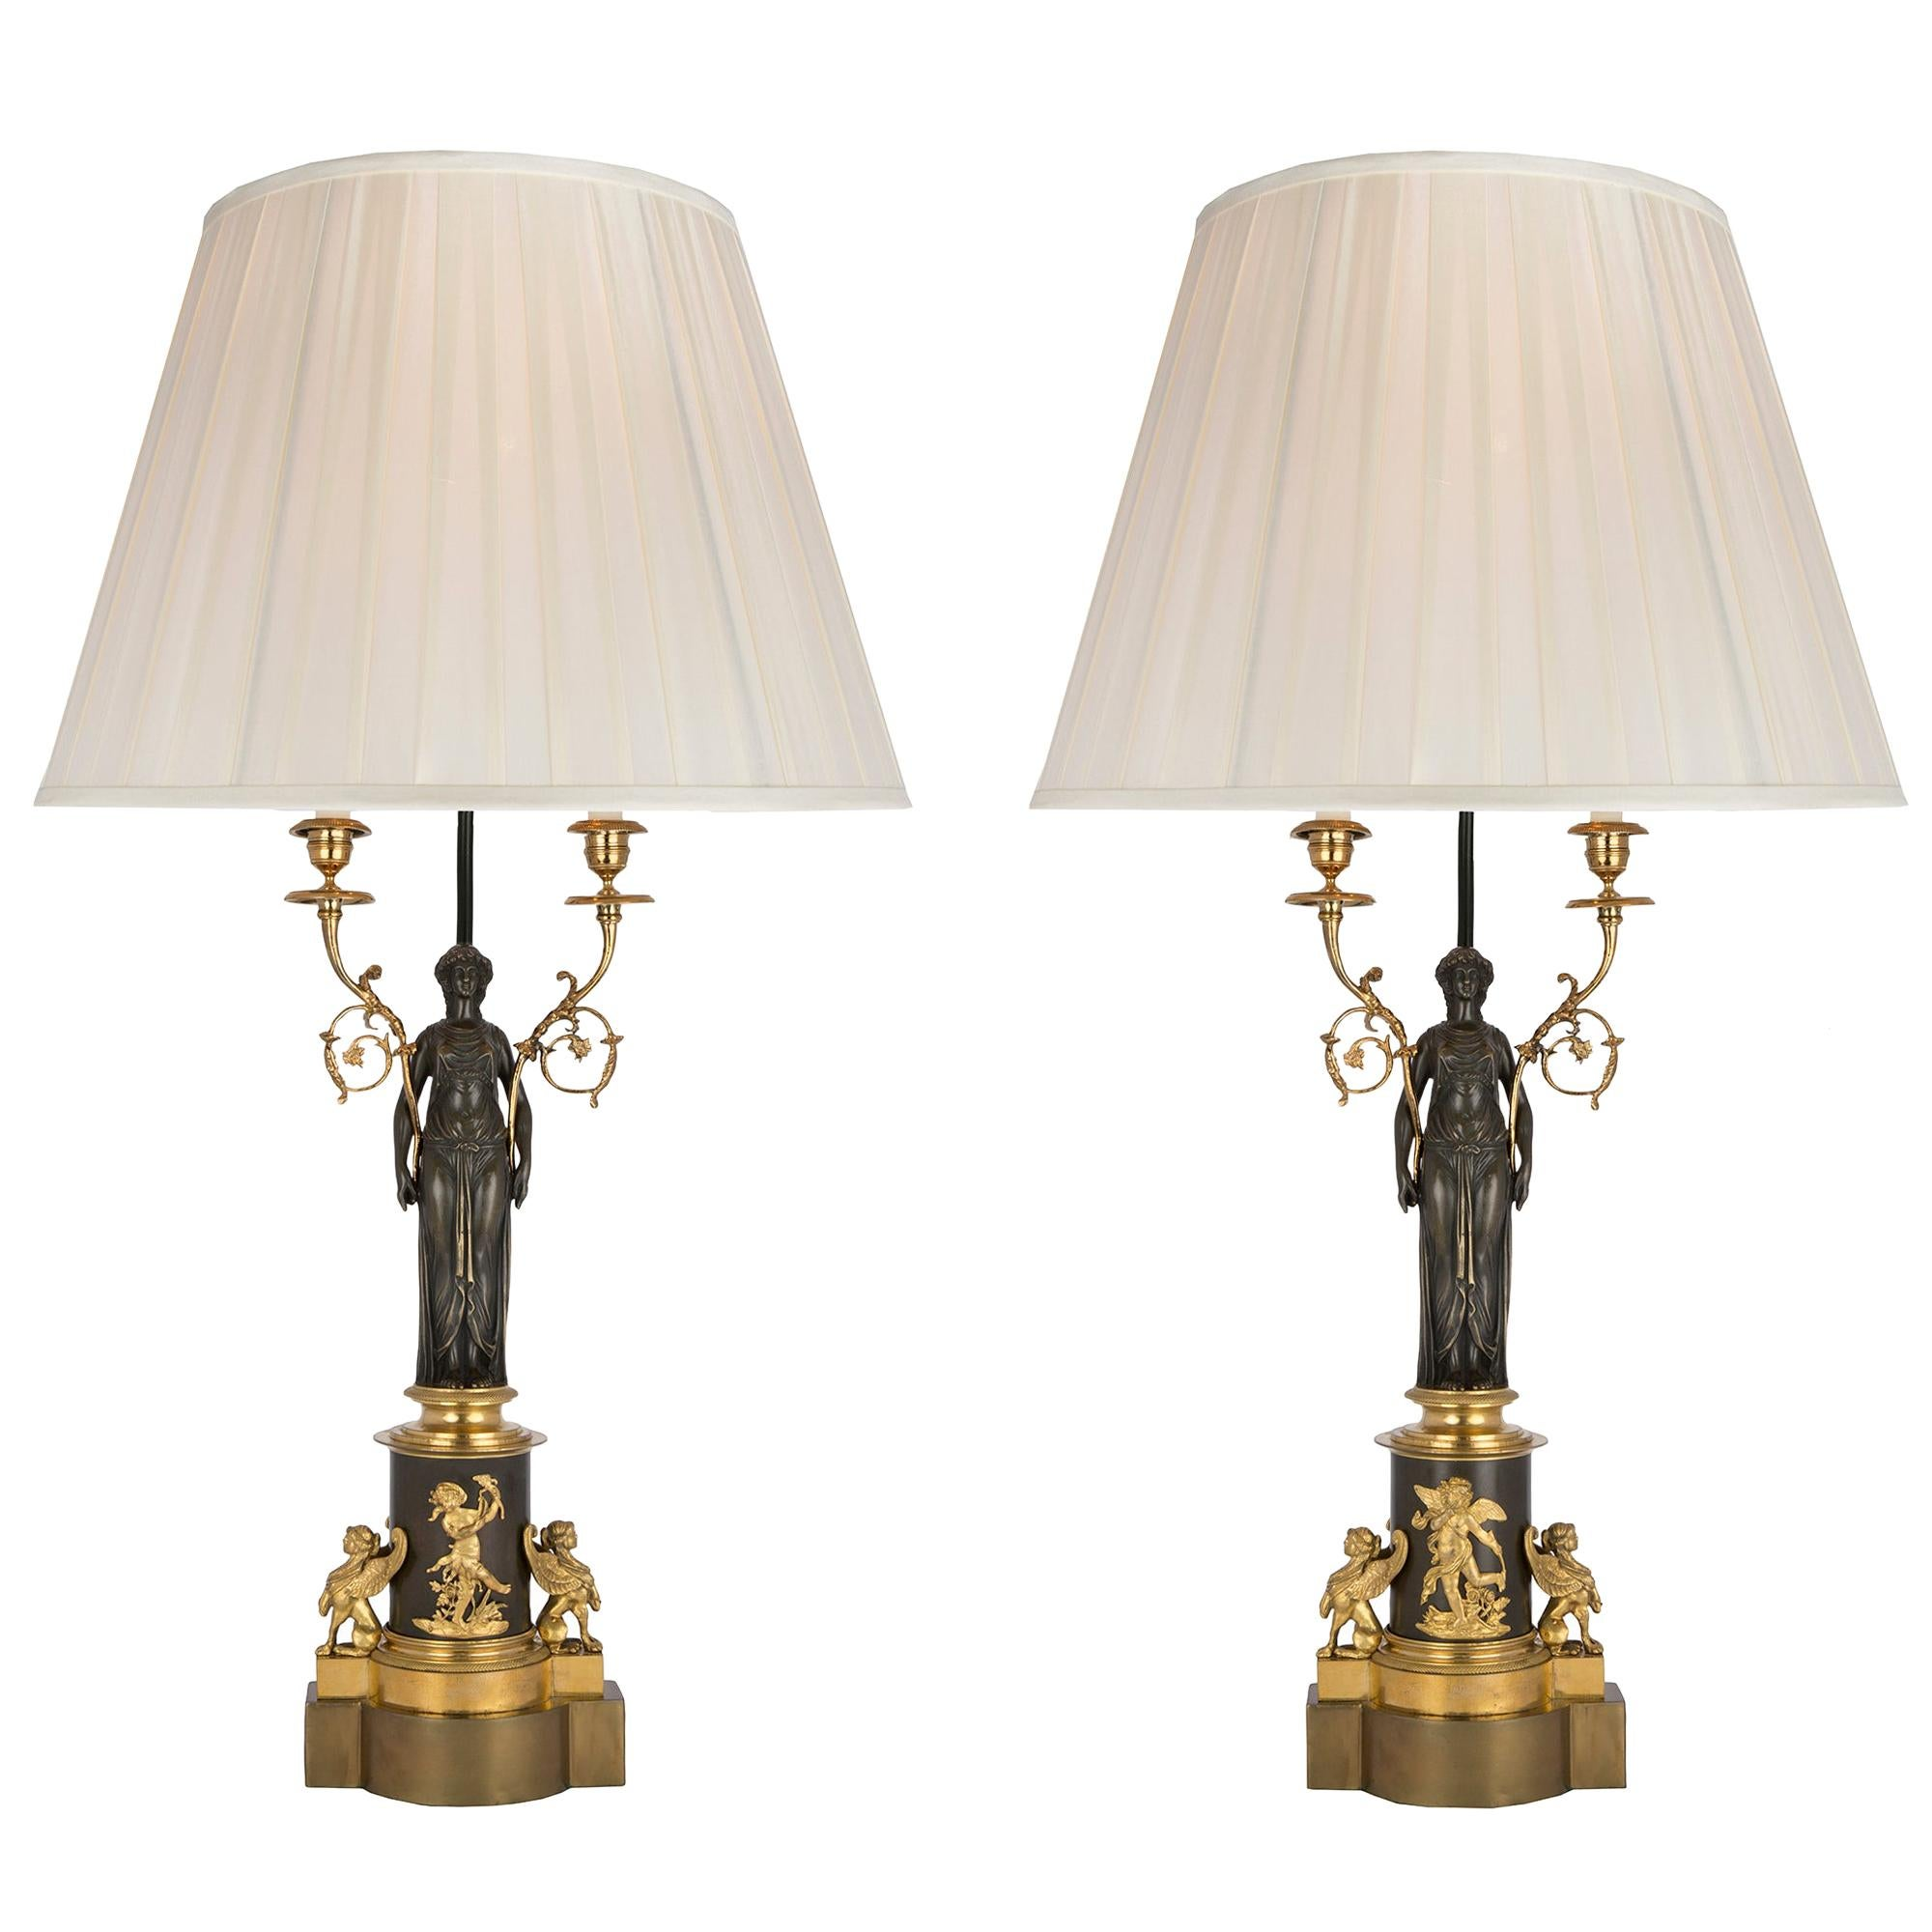 Neoclassical Table Lamps 539 For Sale